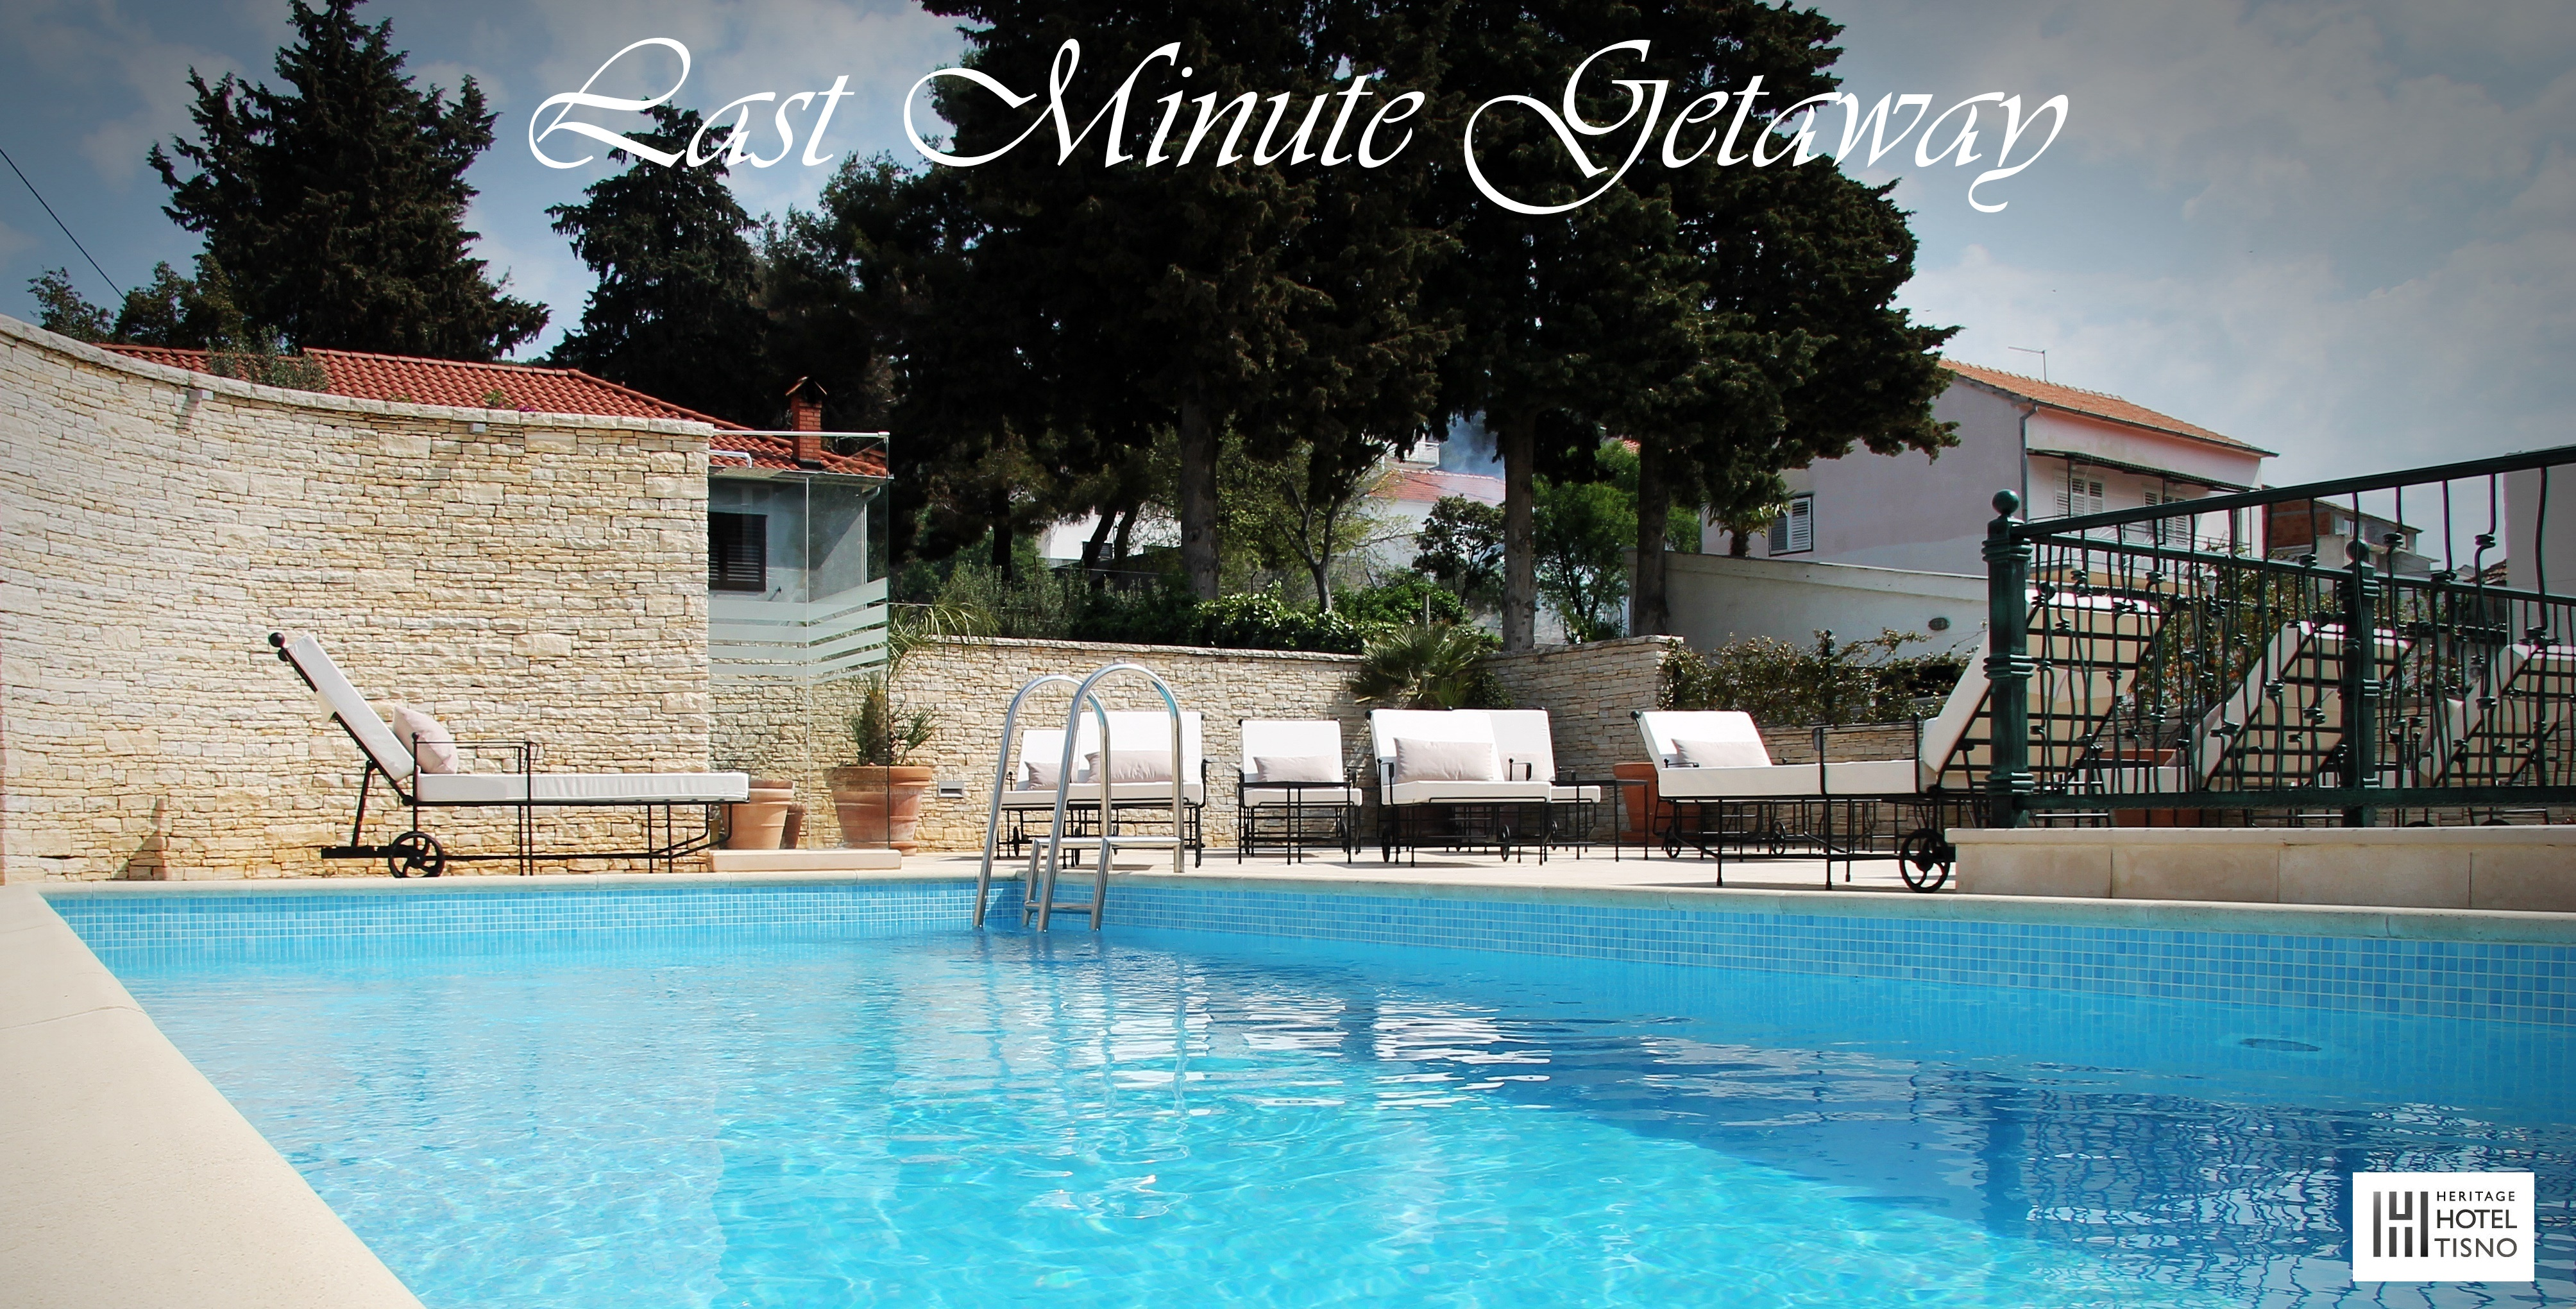 Last minute getaway hotel tisno croatia for Last minute design hotel